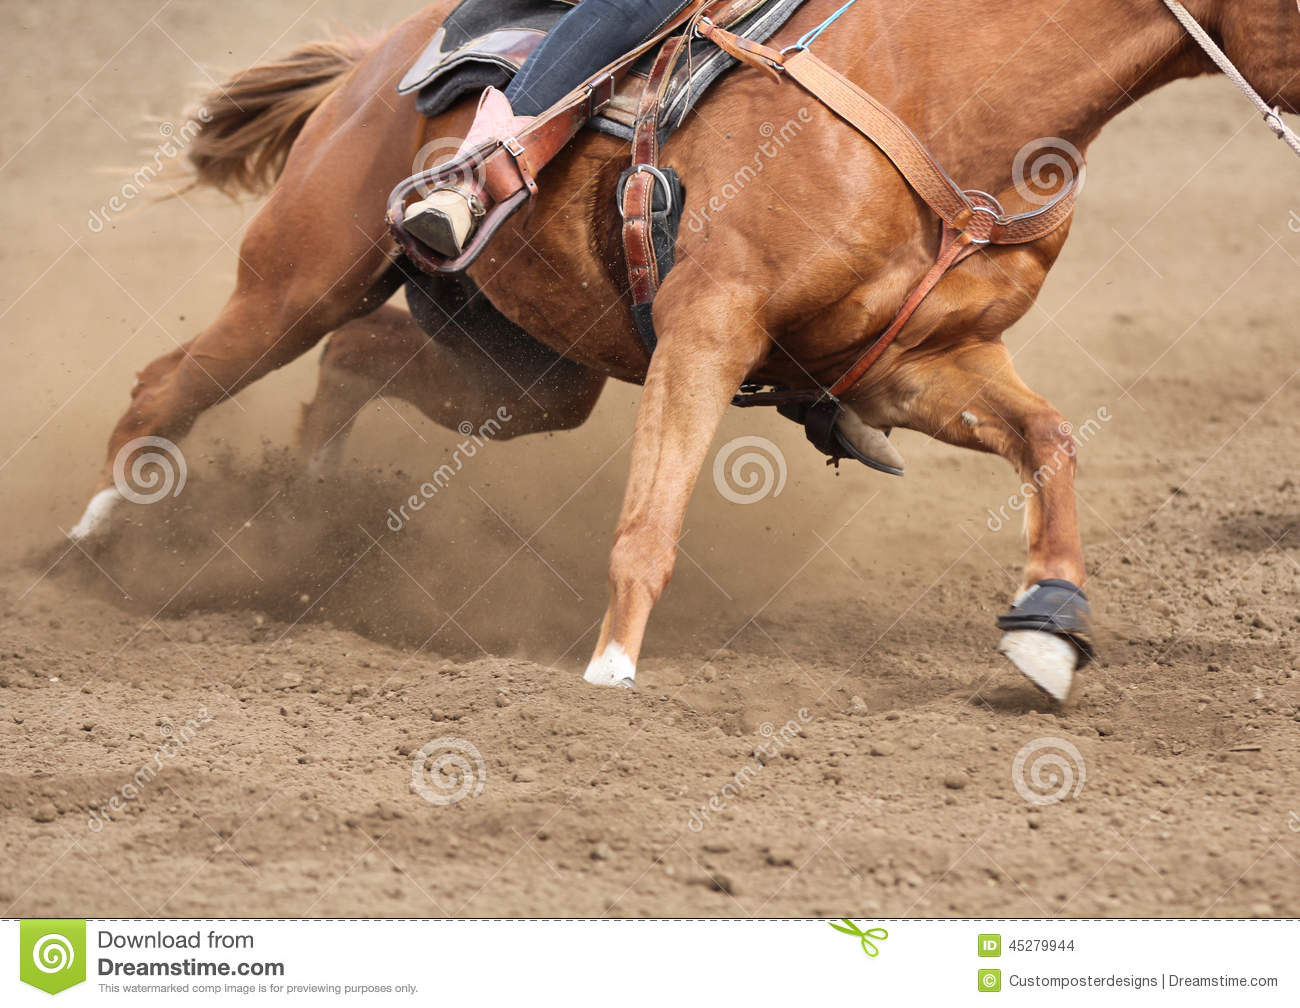 Download A Close Up View Of A Fast Running Horse And Flying Dirt. Stock Photo - Image of abstract, boot: 45279944